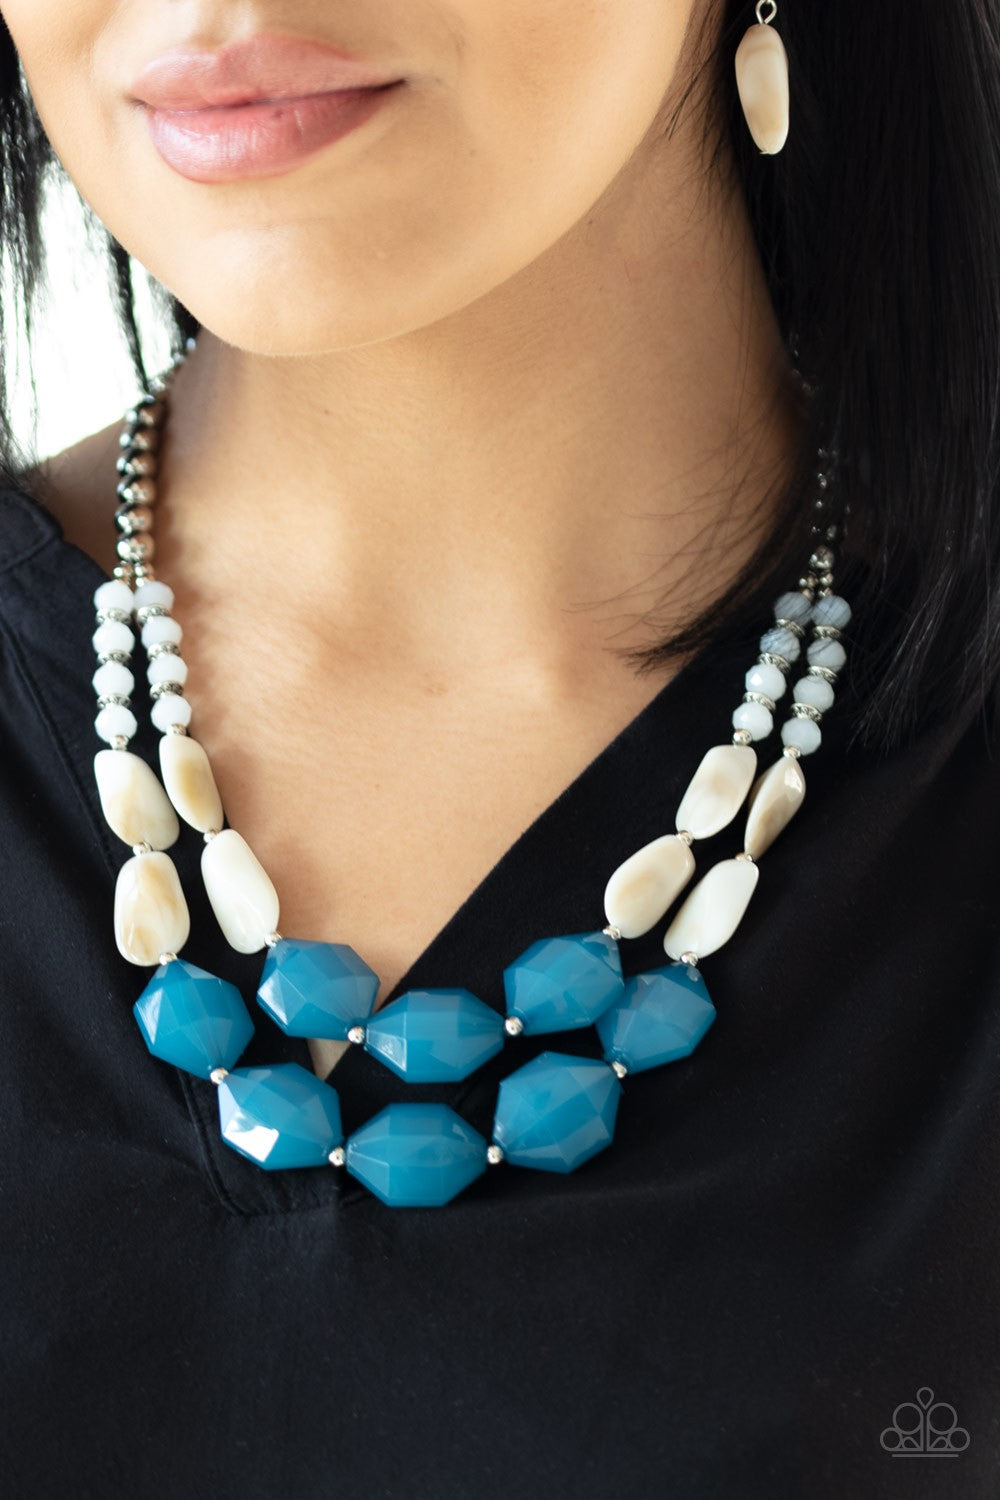 Paparazzi Jewelry & Accessories - Seacoast Sunset - Blue Necklace. Bling By Titia Boutique